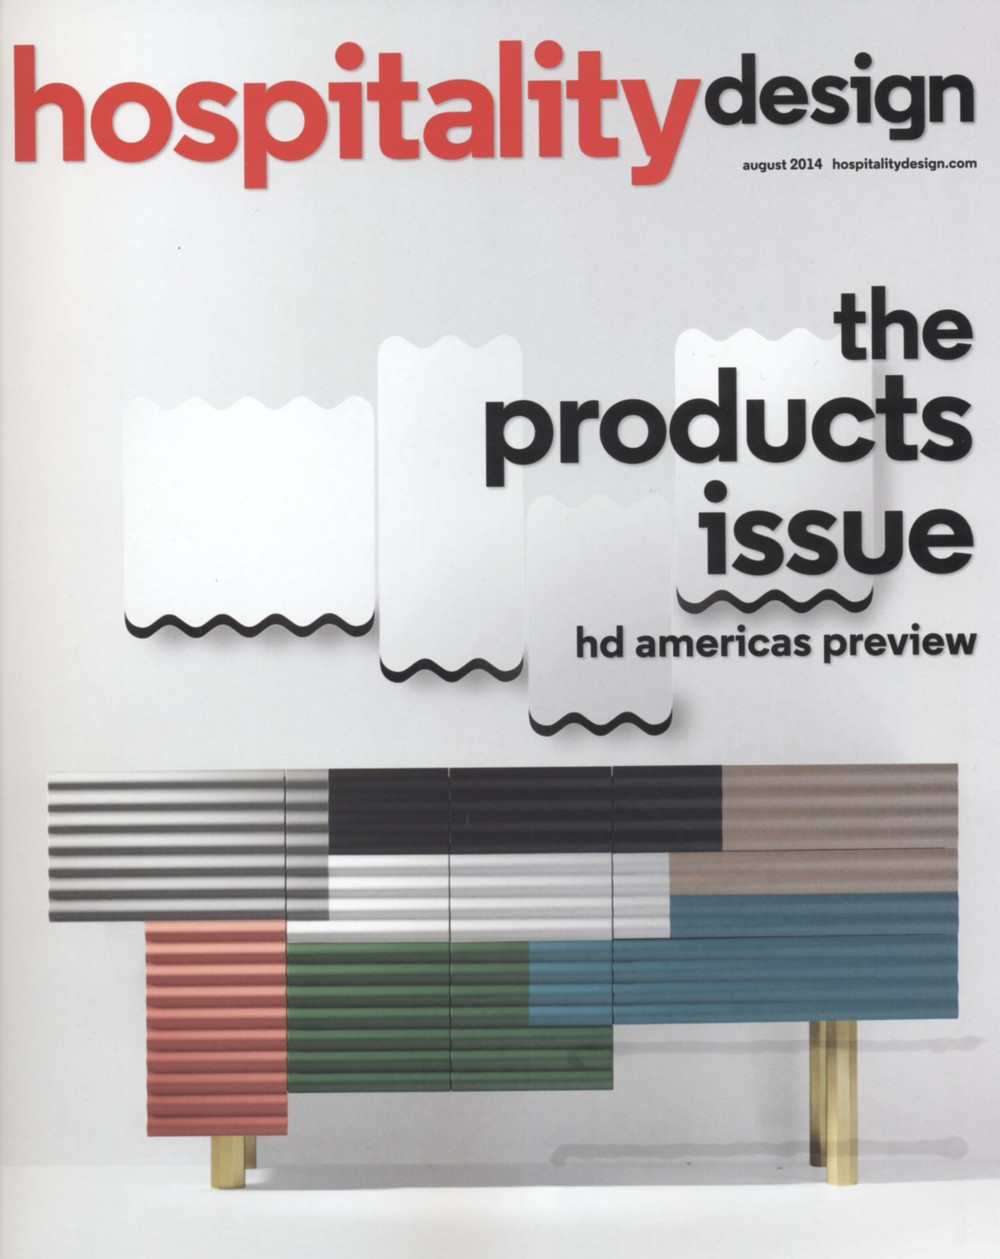 HOSPITALITY DESIGN AUGUST 2014